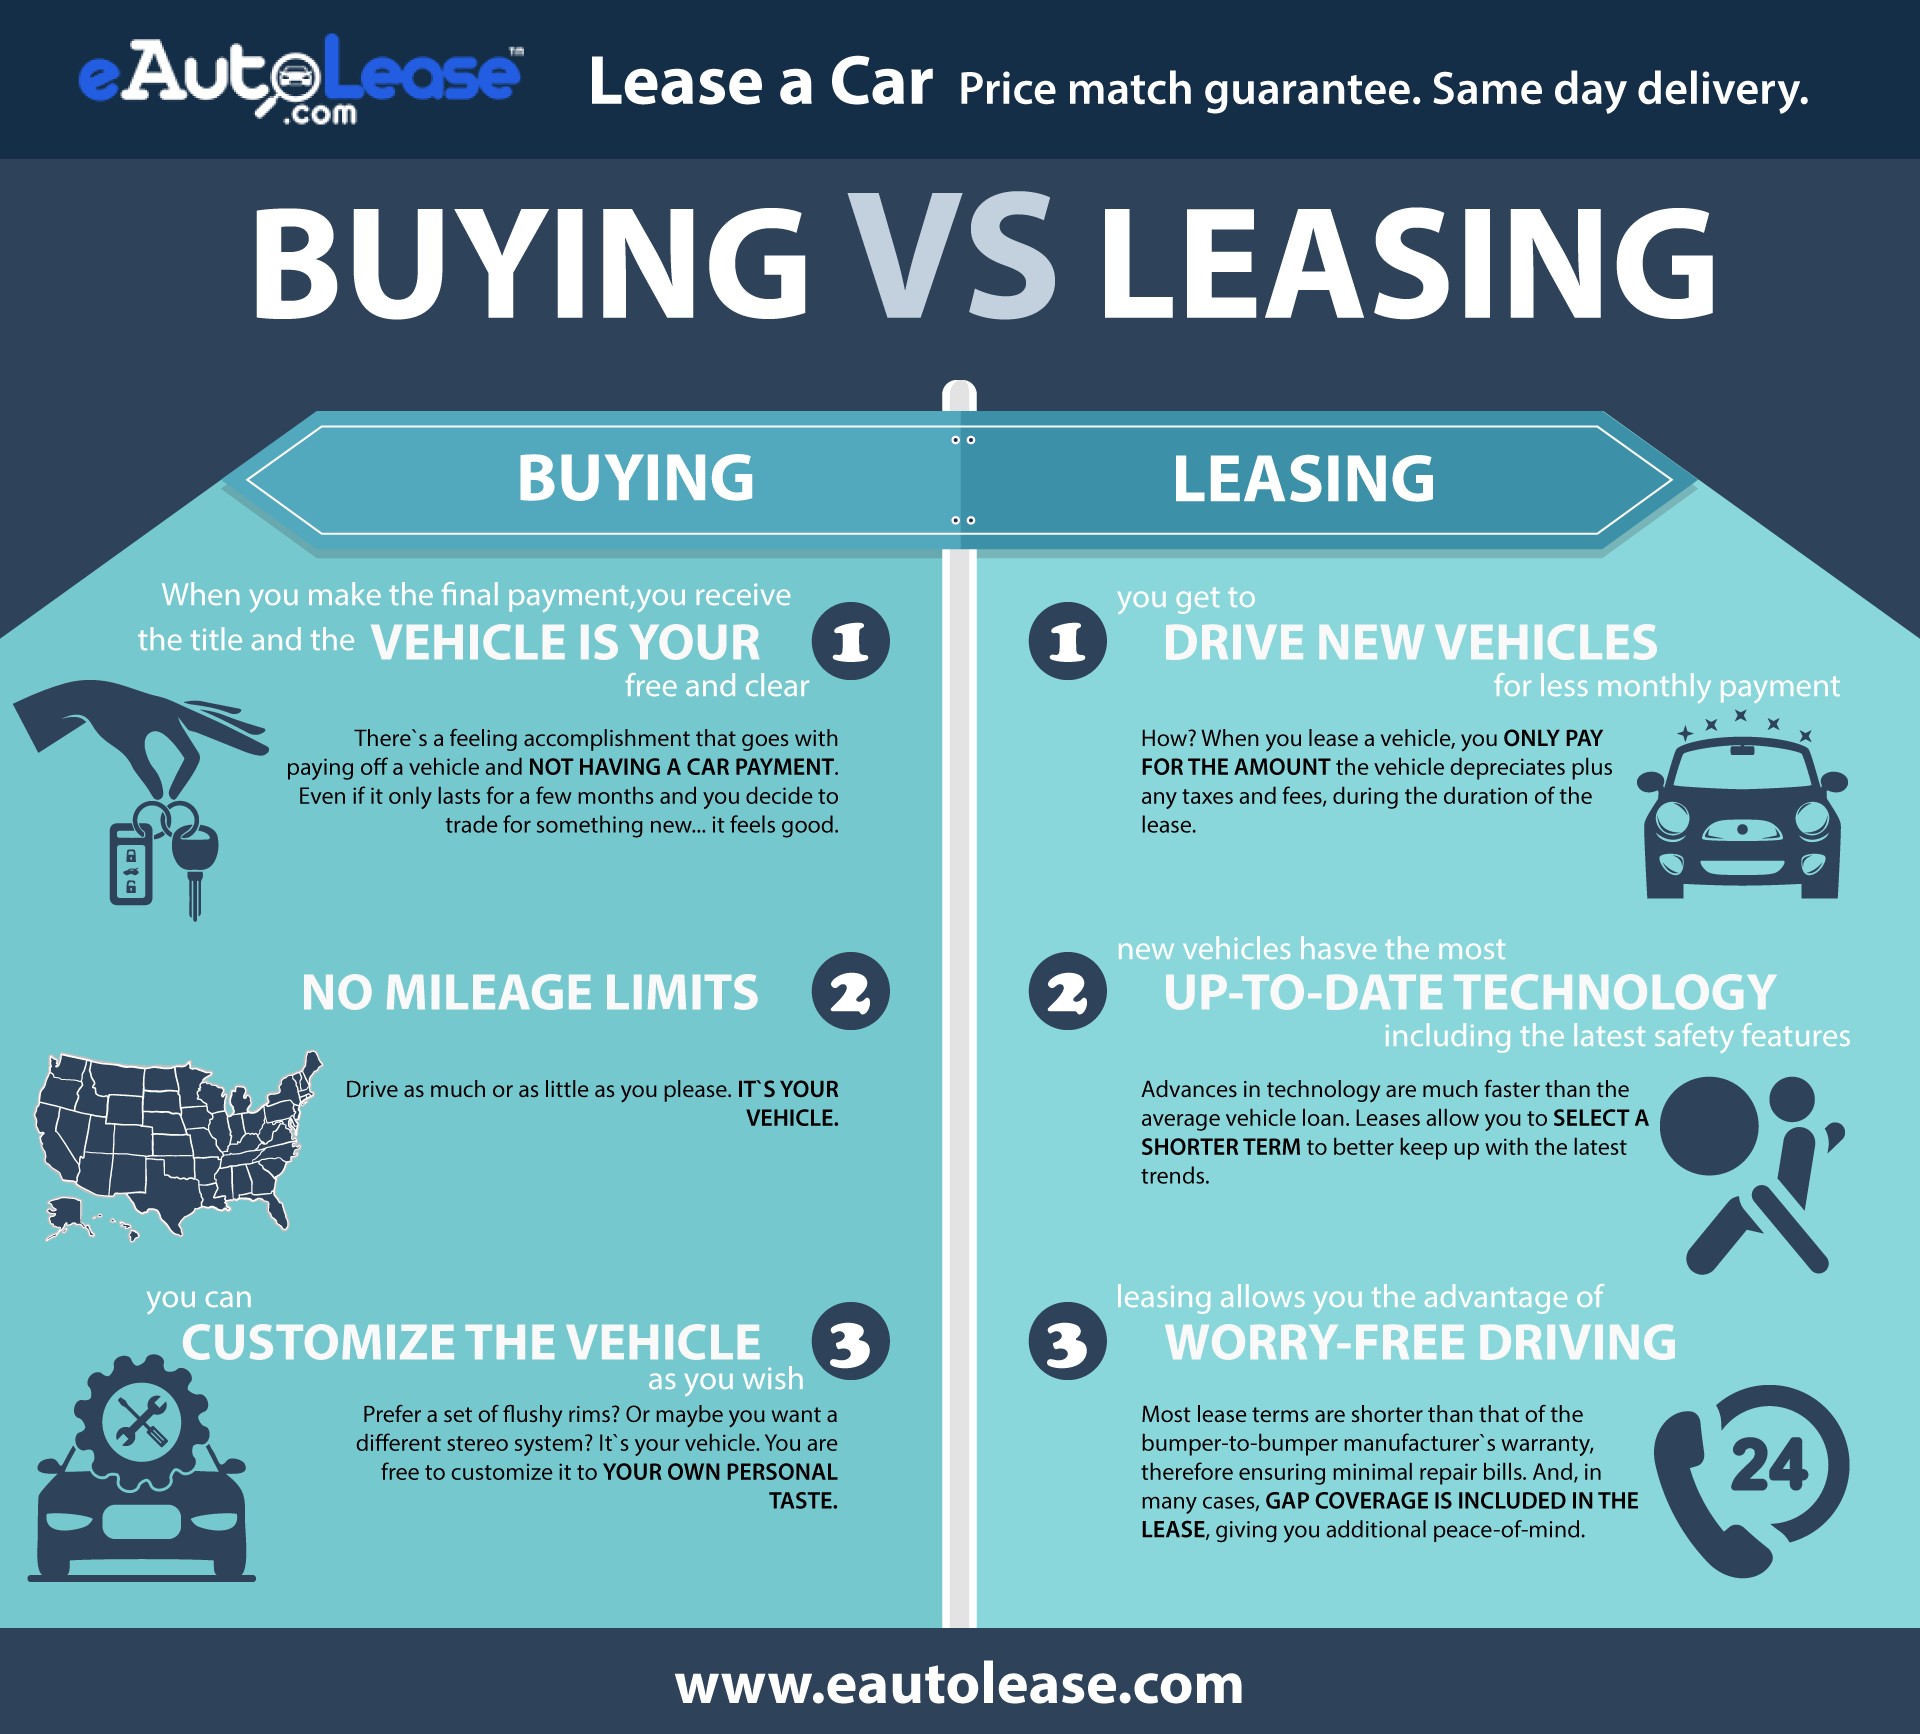 Car Leasing Service Auto Leasing Lease Transfer Lease Termination Ford Lease Deals Best Lease Deals Honda Lease Dea Car Lease Lease Deals Honda Lease